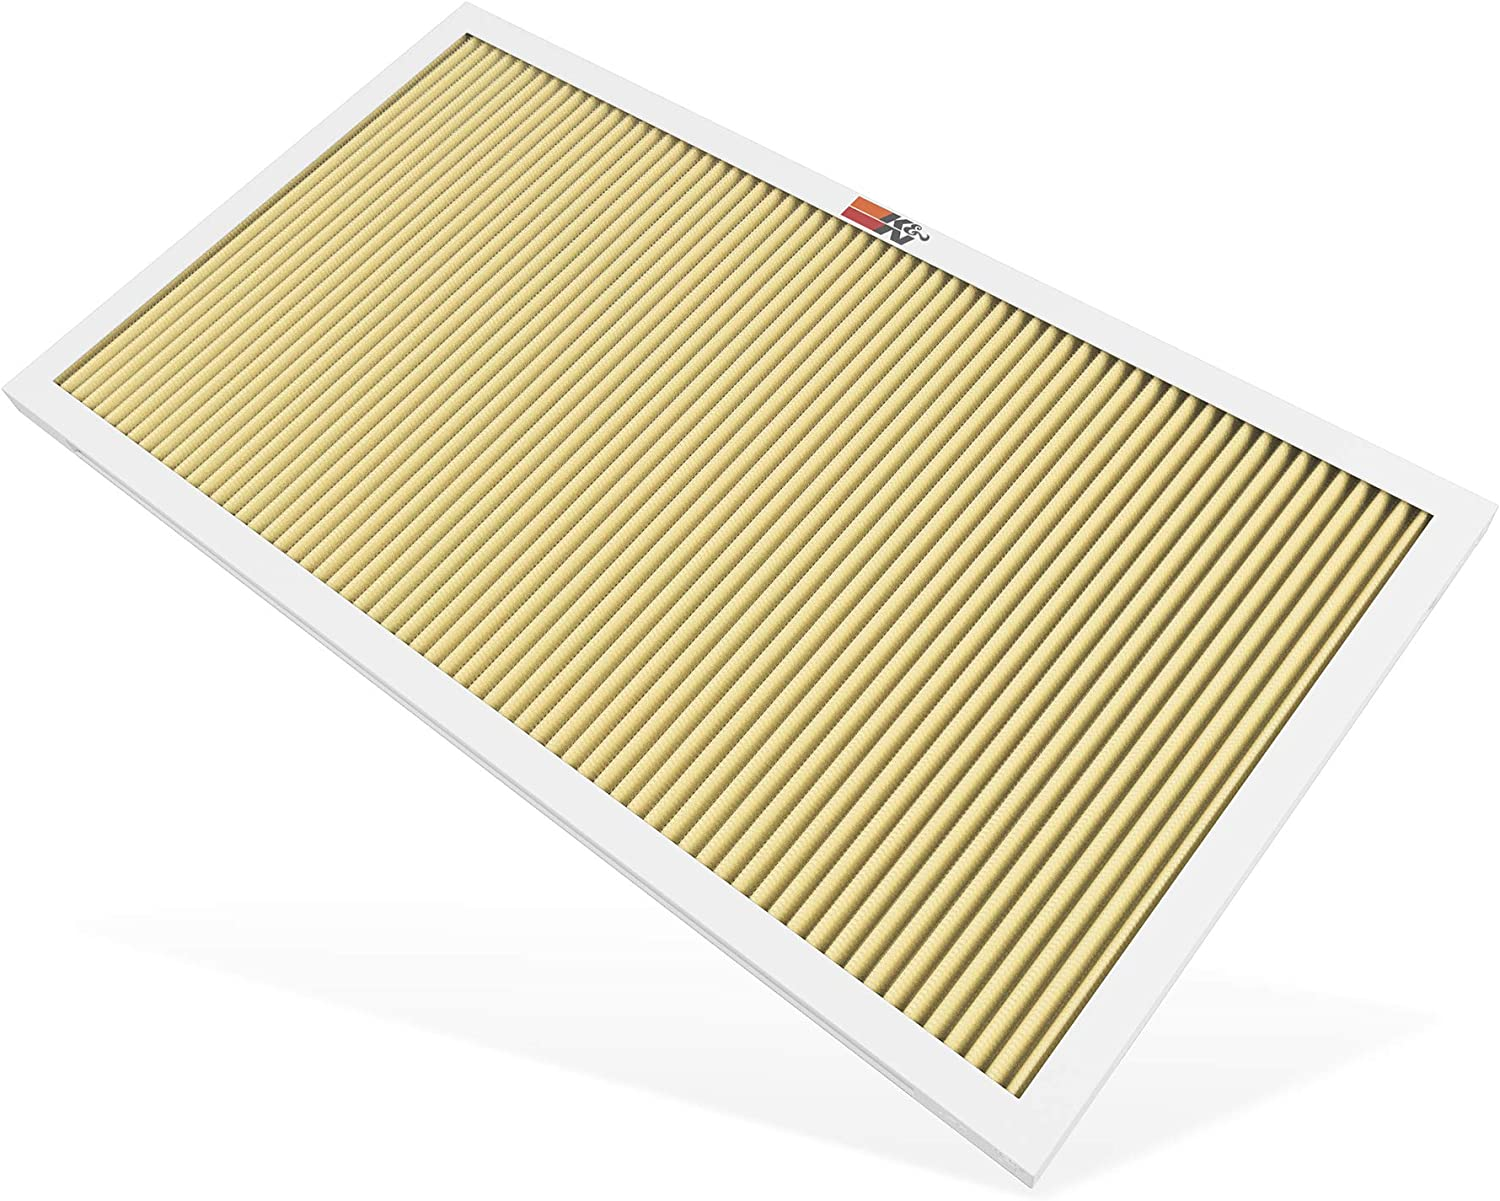 K&N 14x25x1 HVAC Air Filter; Lasts a Lifetime; Washable; Merv 11; Filters Allergies, Pollen, Smoke, Dust, Pet Dander, Mold, Smog, and More; Breathe Cleanly at Home, HVC-11425